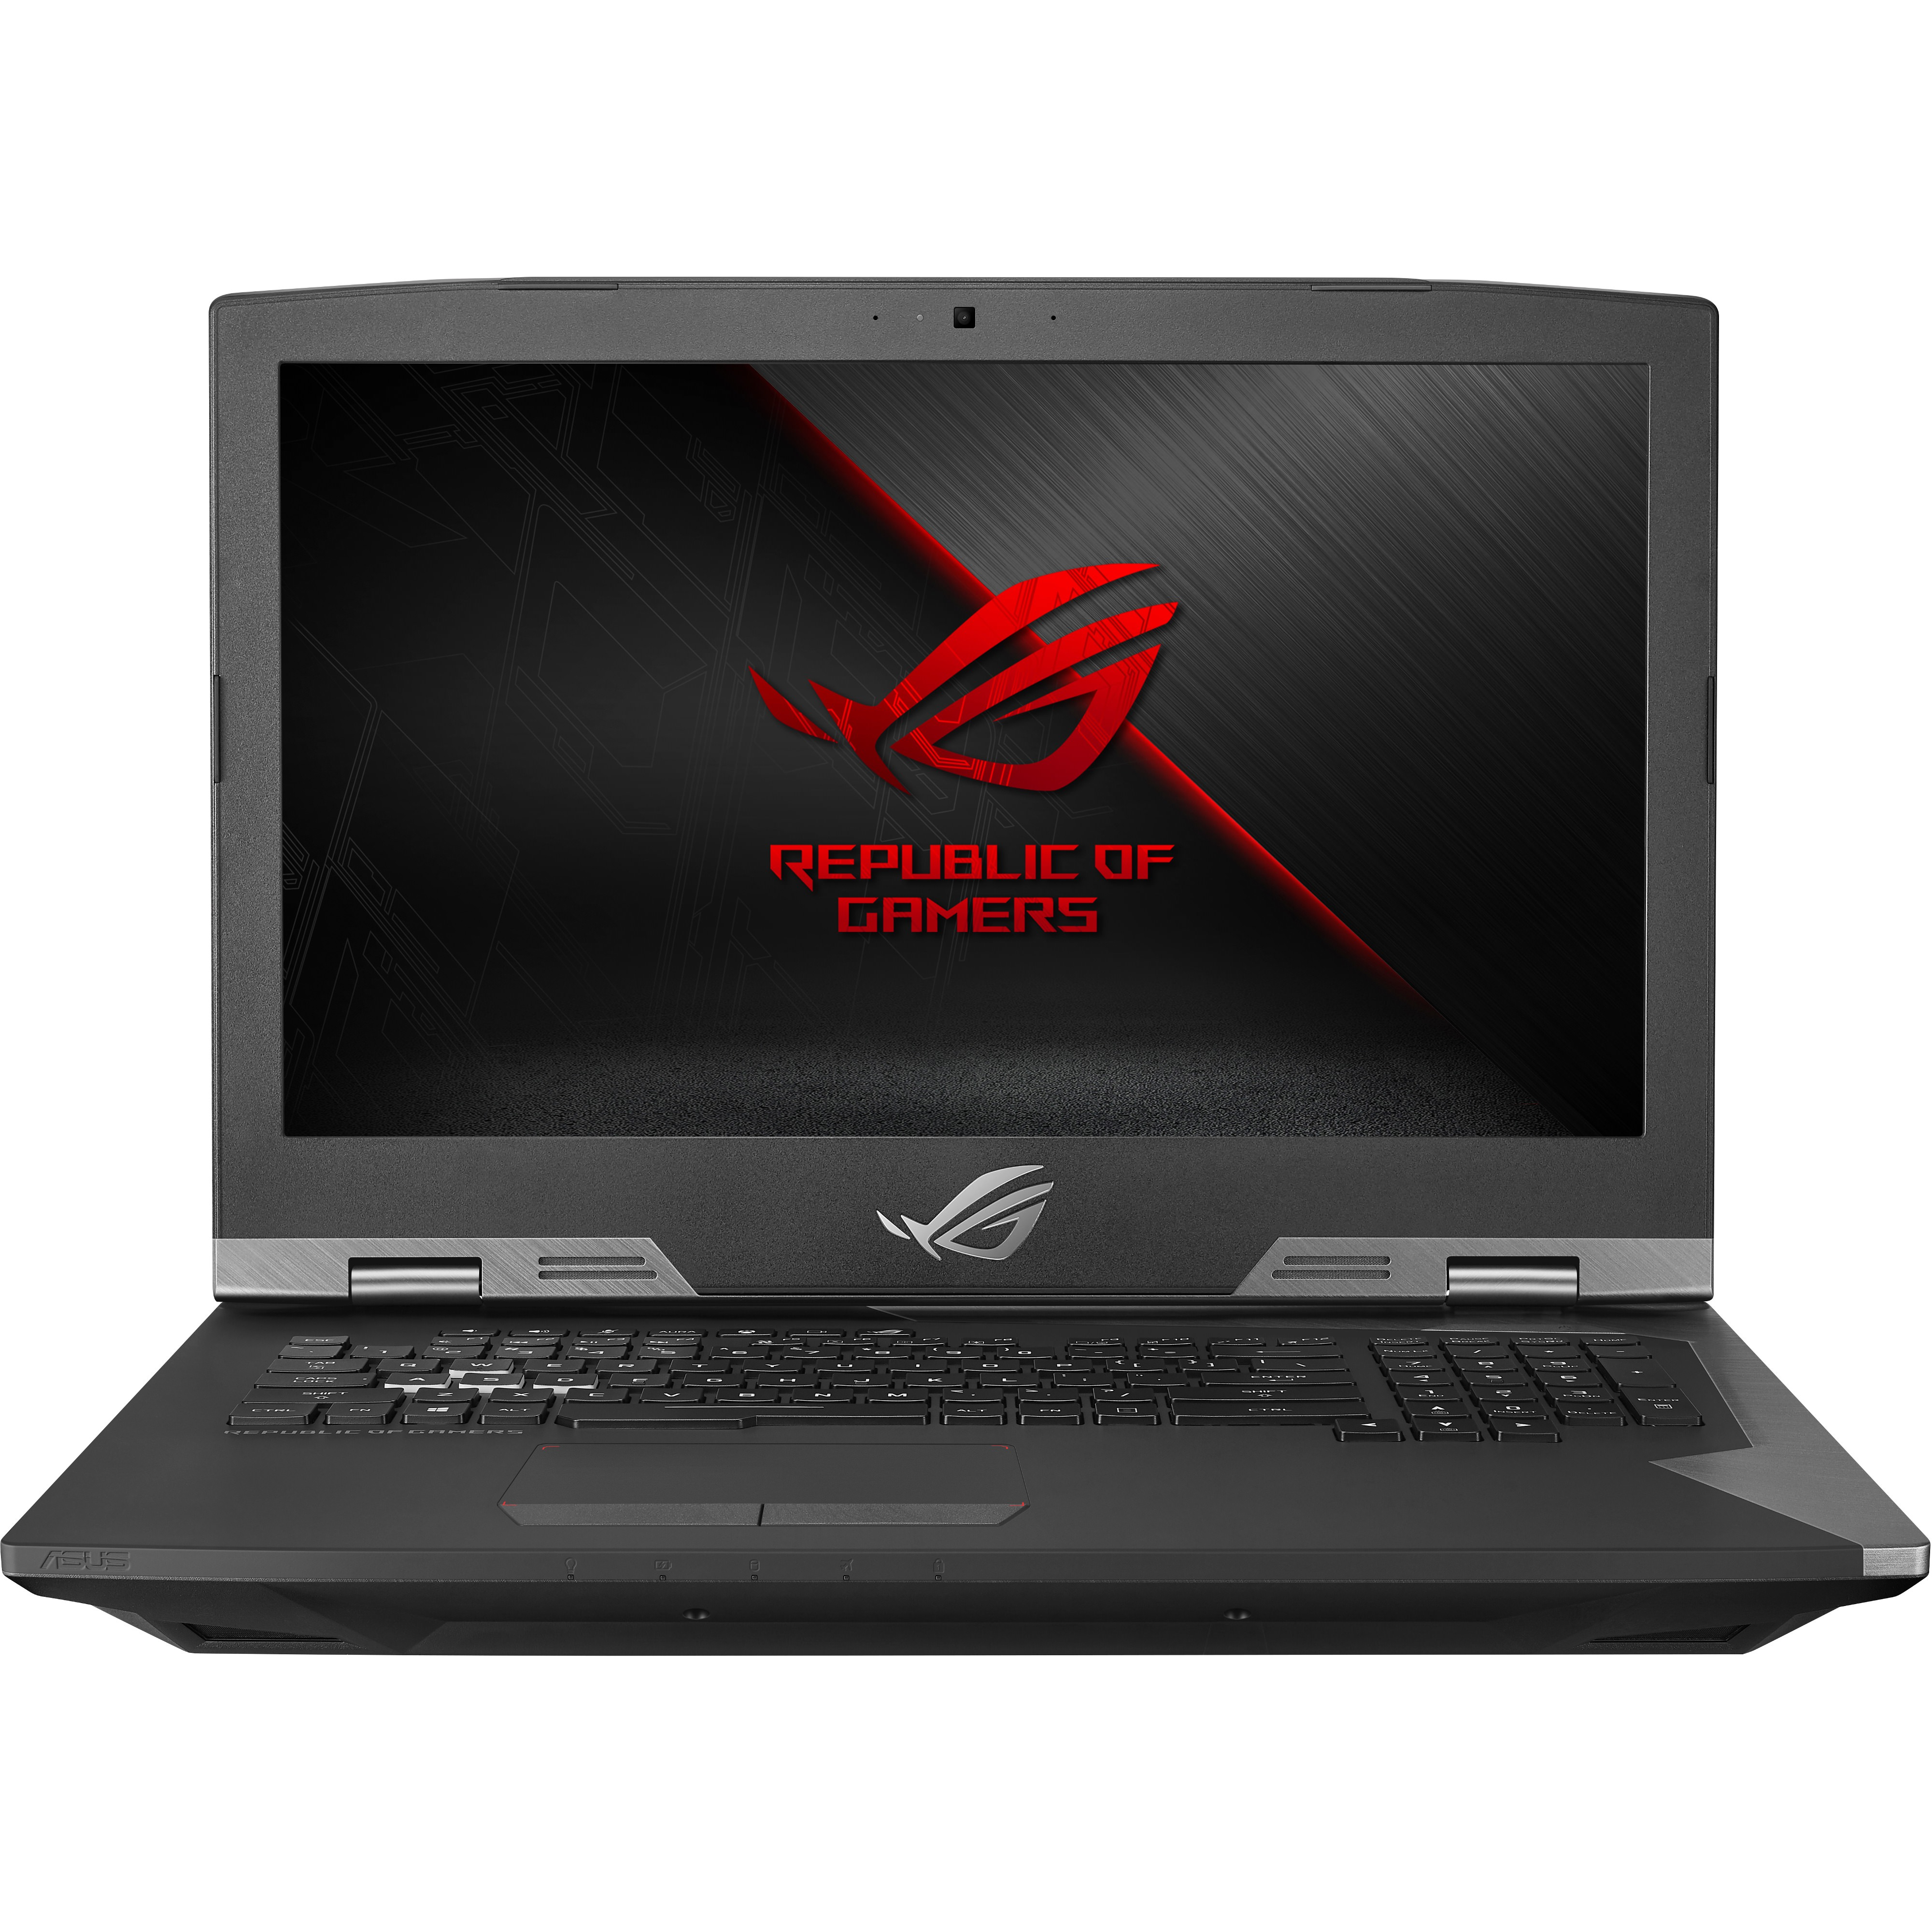 Asus ROG G703VI-XH74K, 17.3-inch 144Hz G-SYNC, Overclocked Core i7 CPU and GTX 1080 8GB, 32GB DDR4, 512GB PCIe... by ASUS